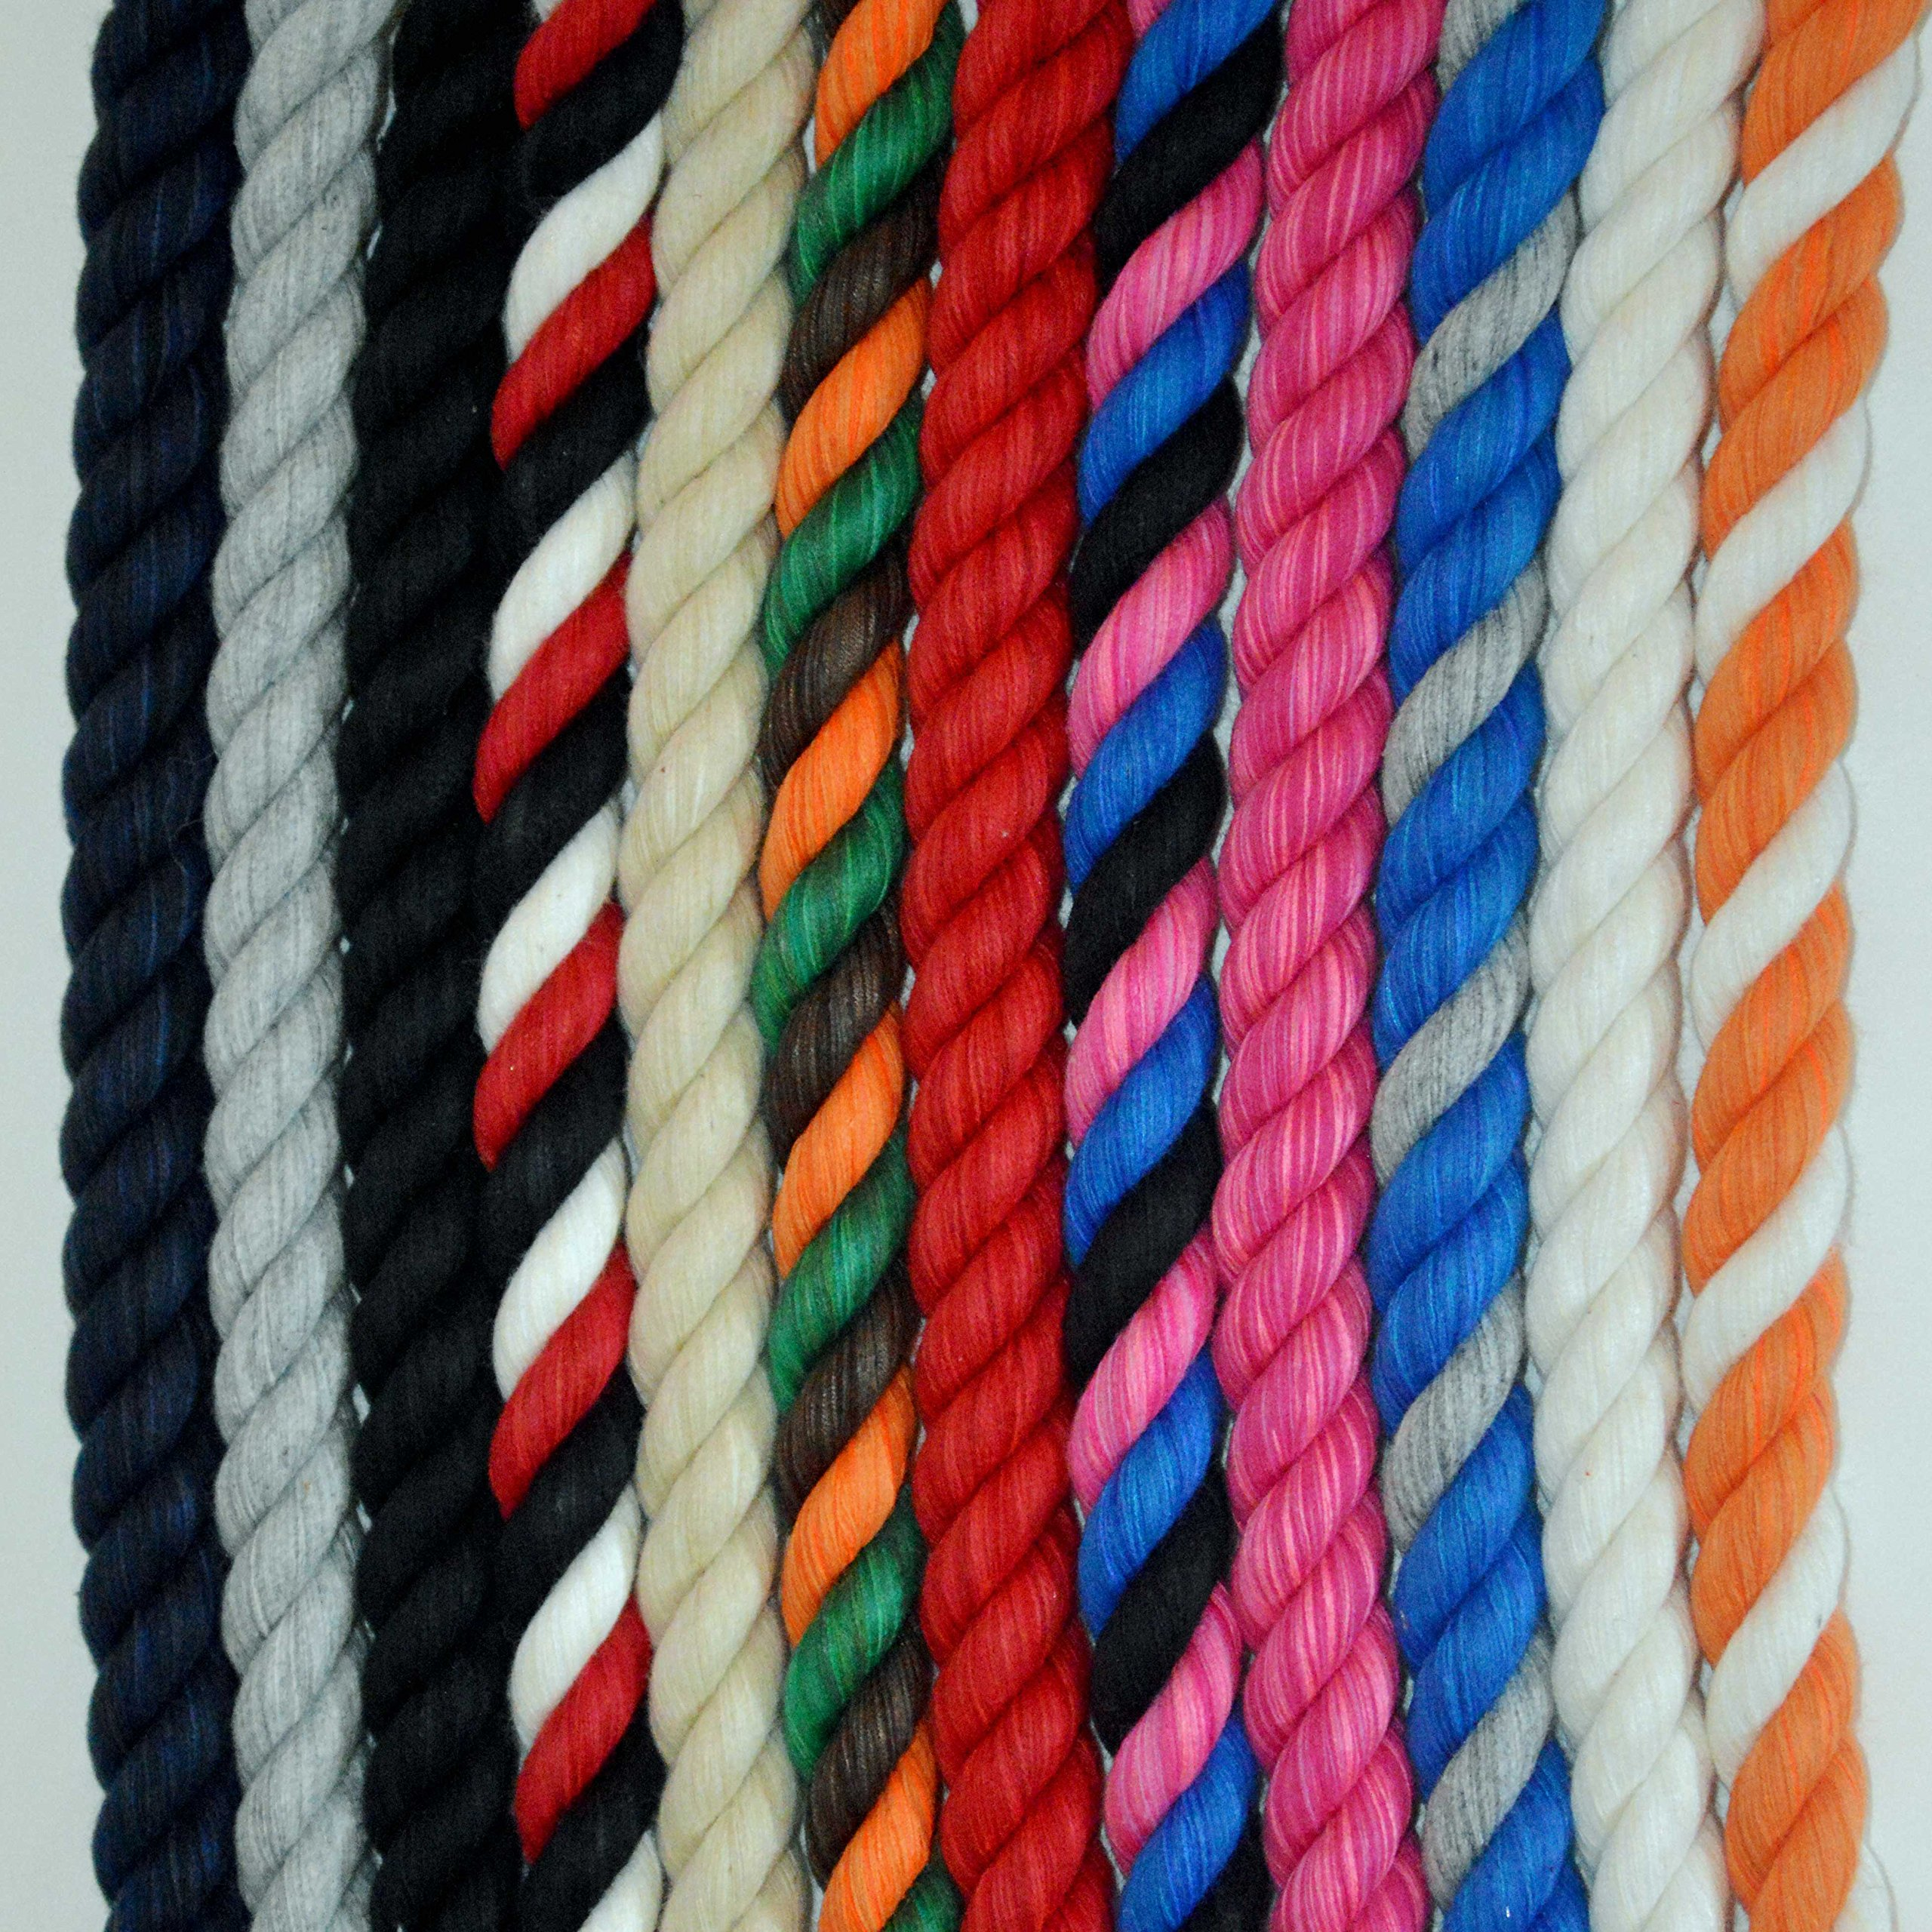 3 Strand Twisted Soft Colored Cotton Rope 1/2'' 25', 50', 100' and 640' Spools (1/2'' x 640 ft., Hot Pink)